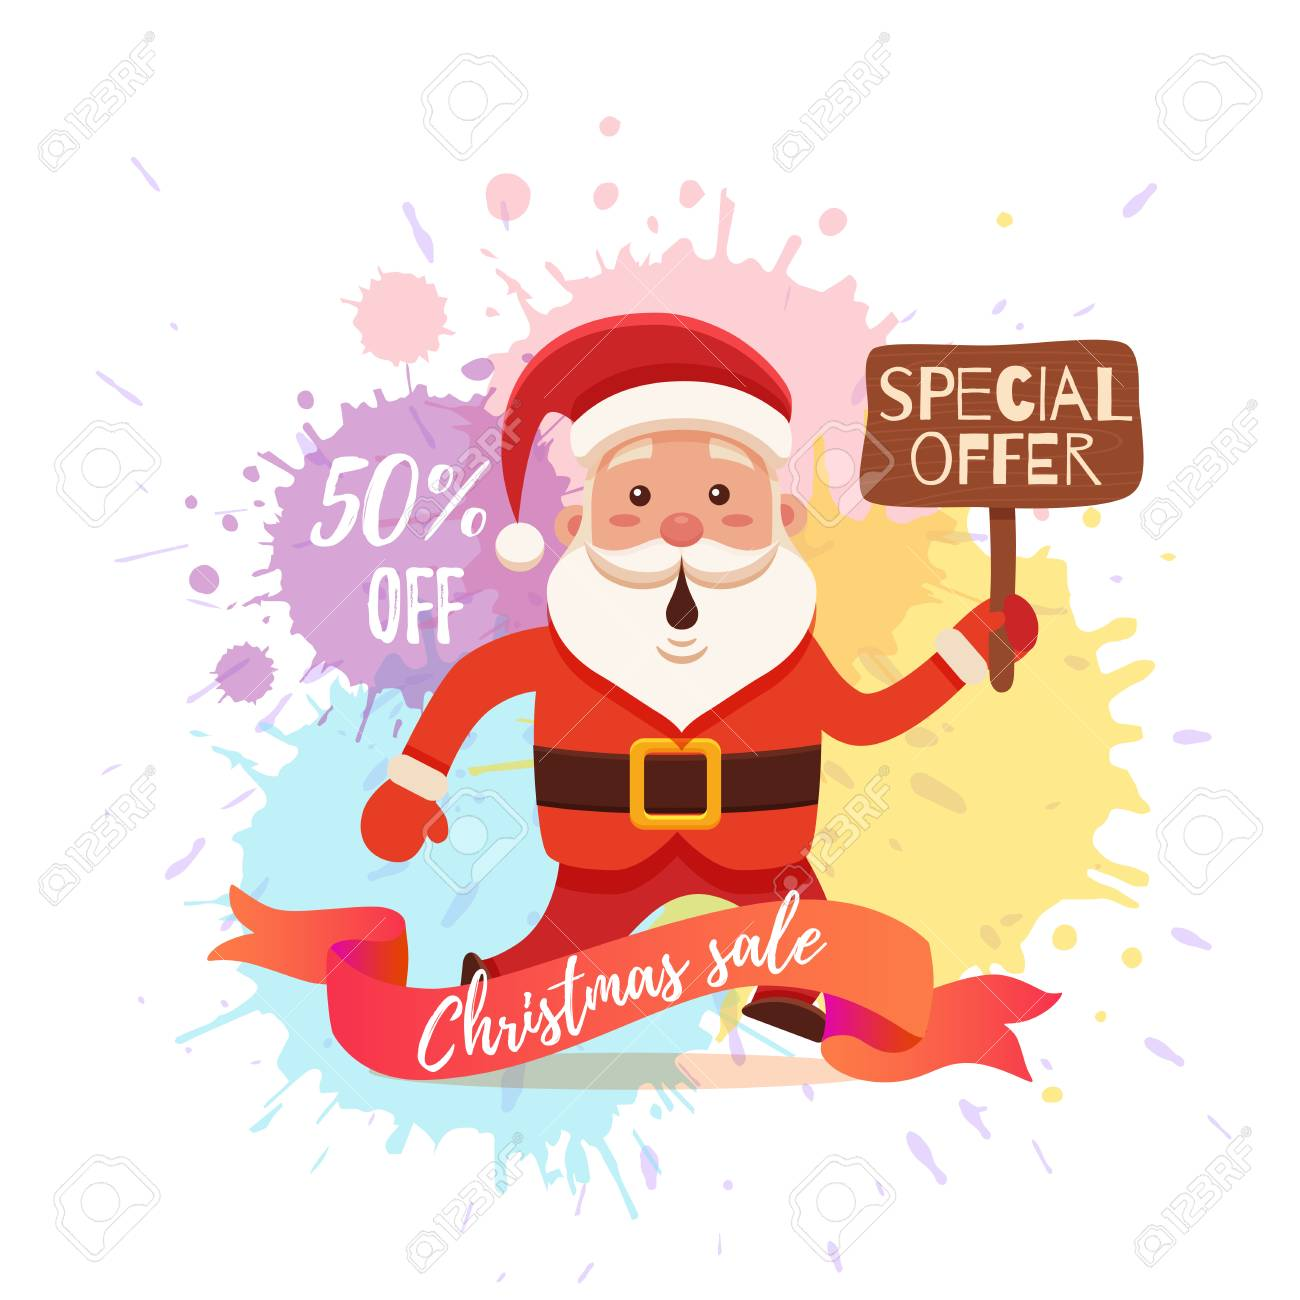 cartoon santa claus for your christmas and new year greeting design animation sale